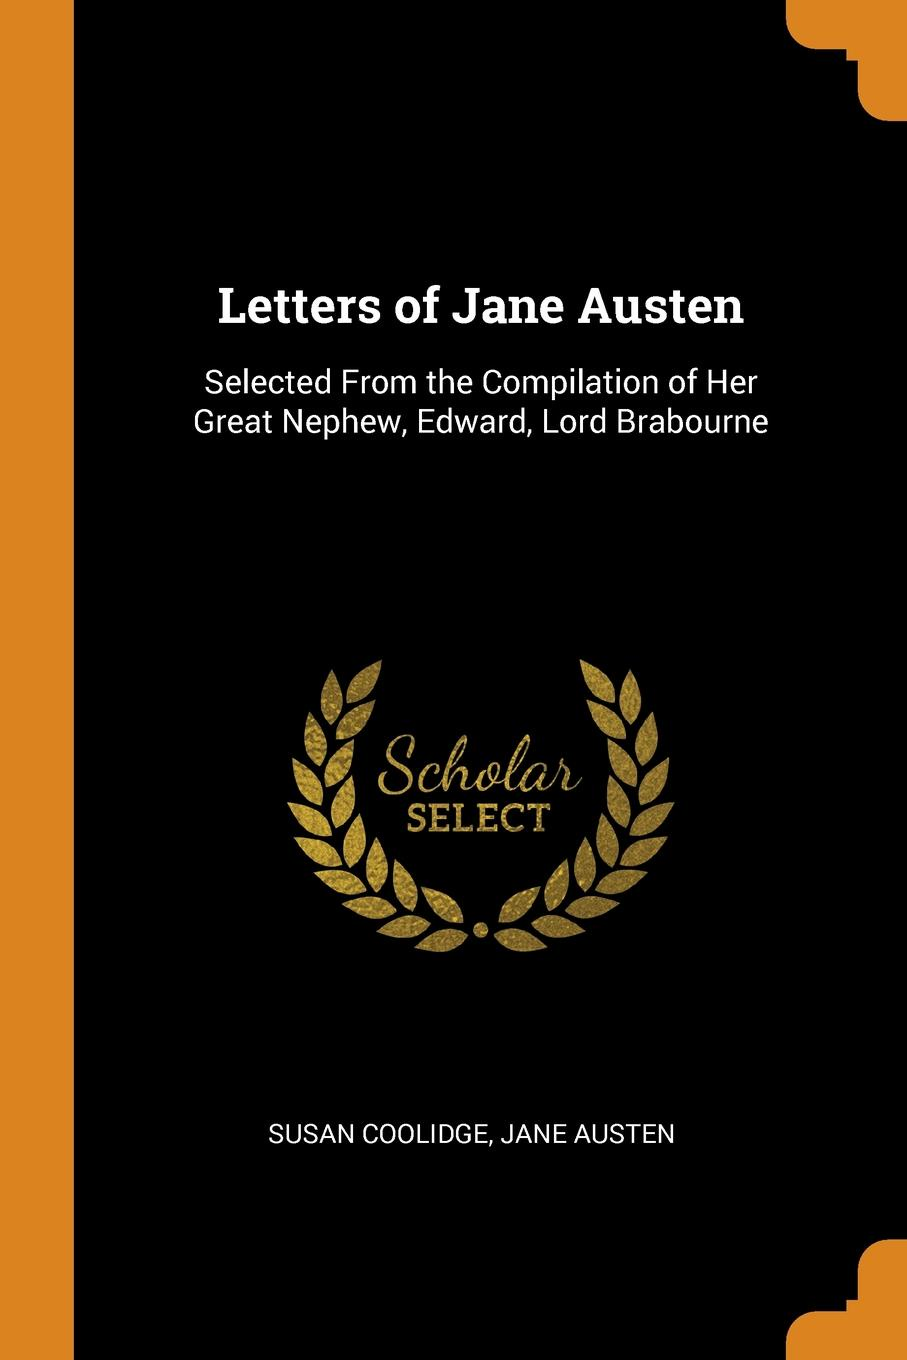 Susan Coolidge, Jane Austen Letters of Jane Austen. Selected From the Compilation of Her Great Nephew, Edward, Lord Brabourne